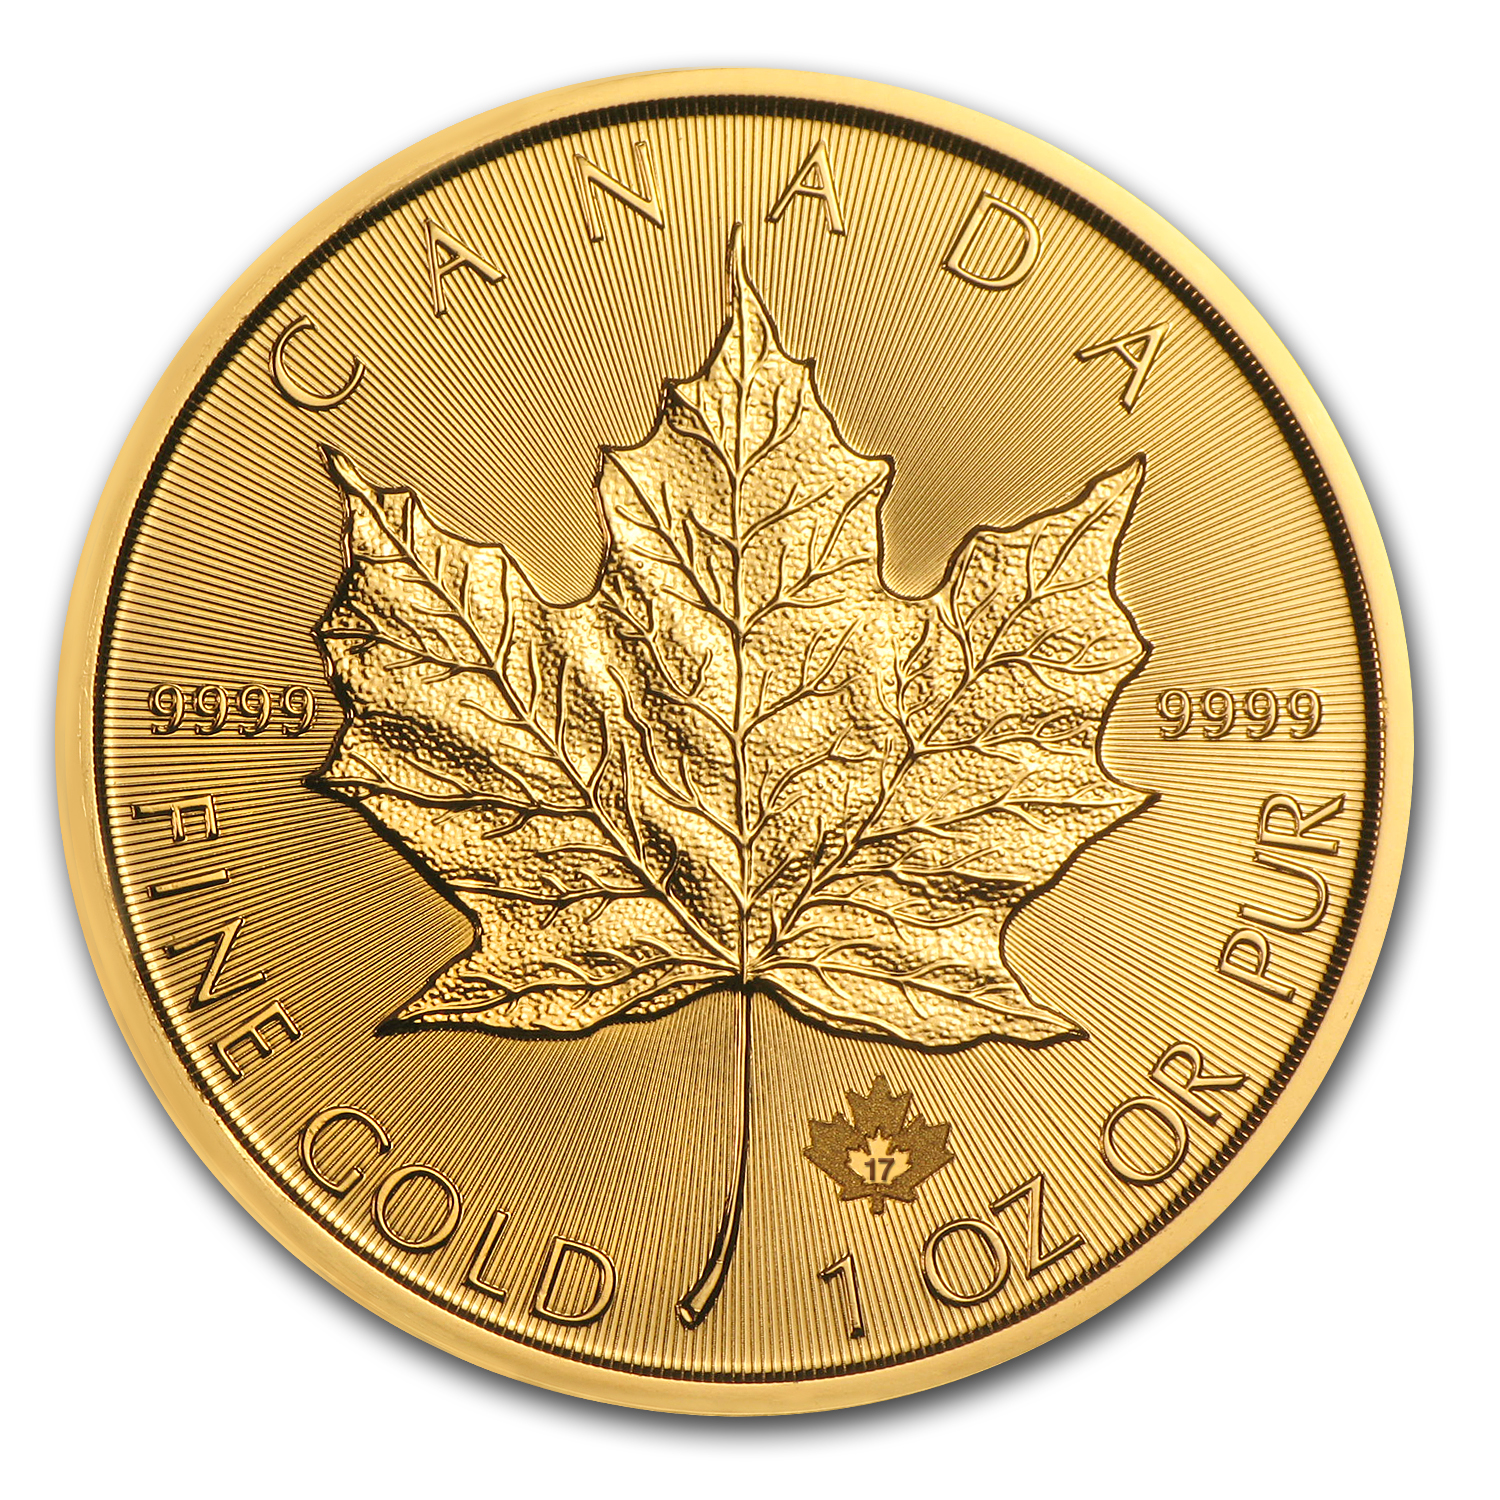 2017 Canada 1 oz Gold Maple Leaf BU